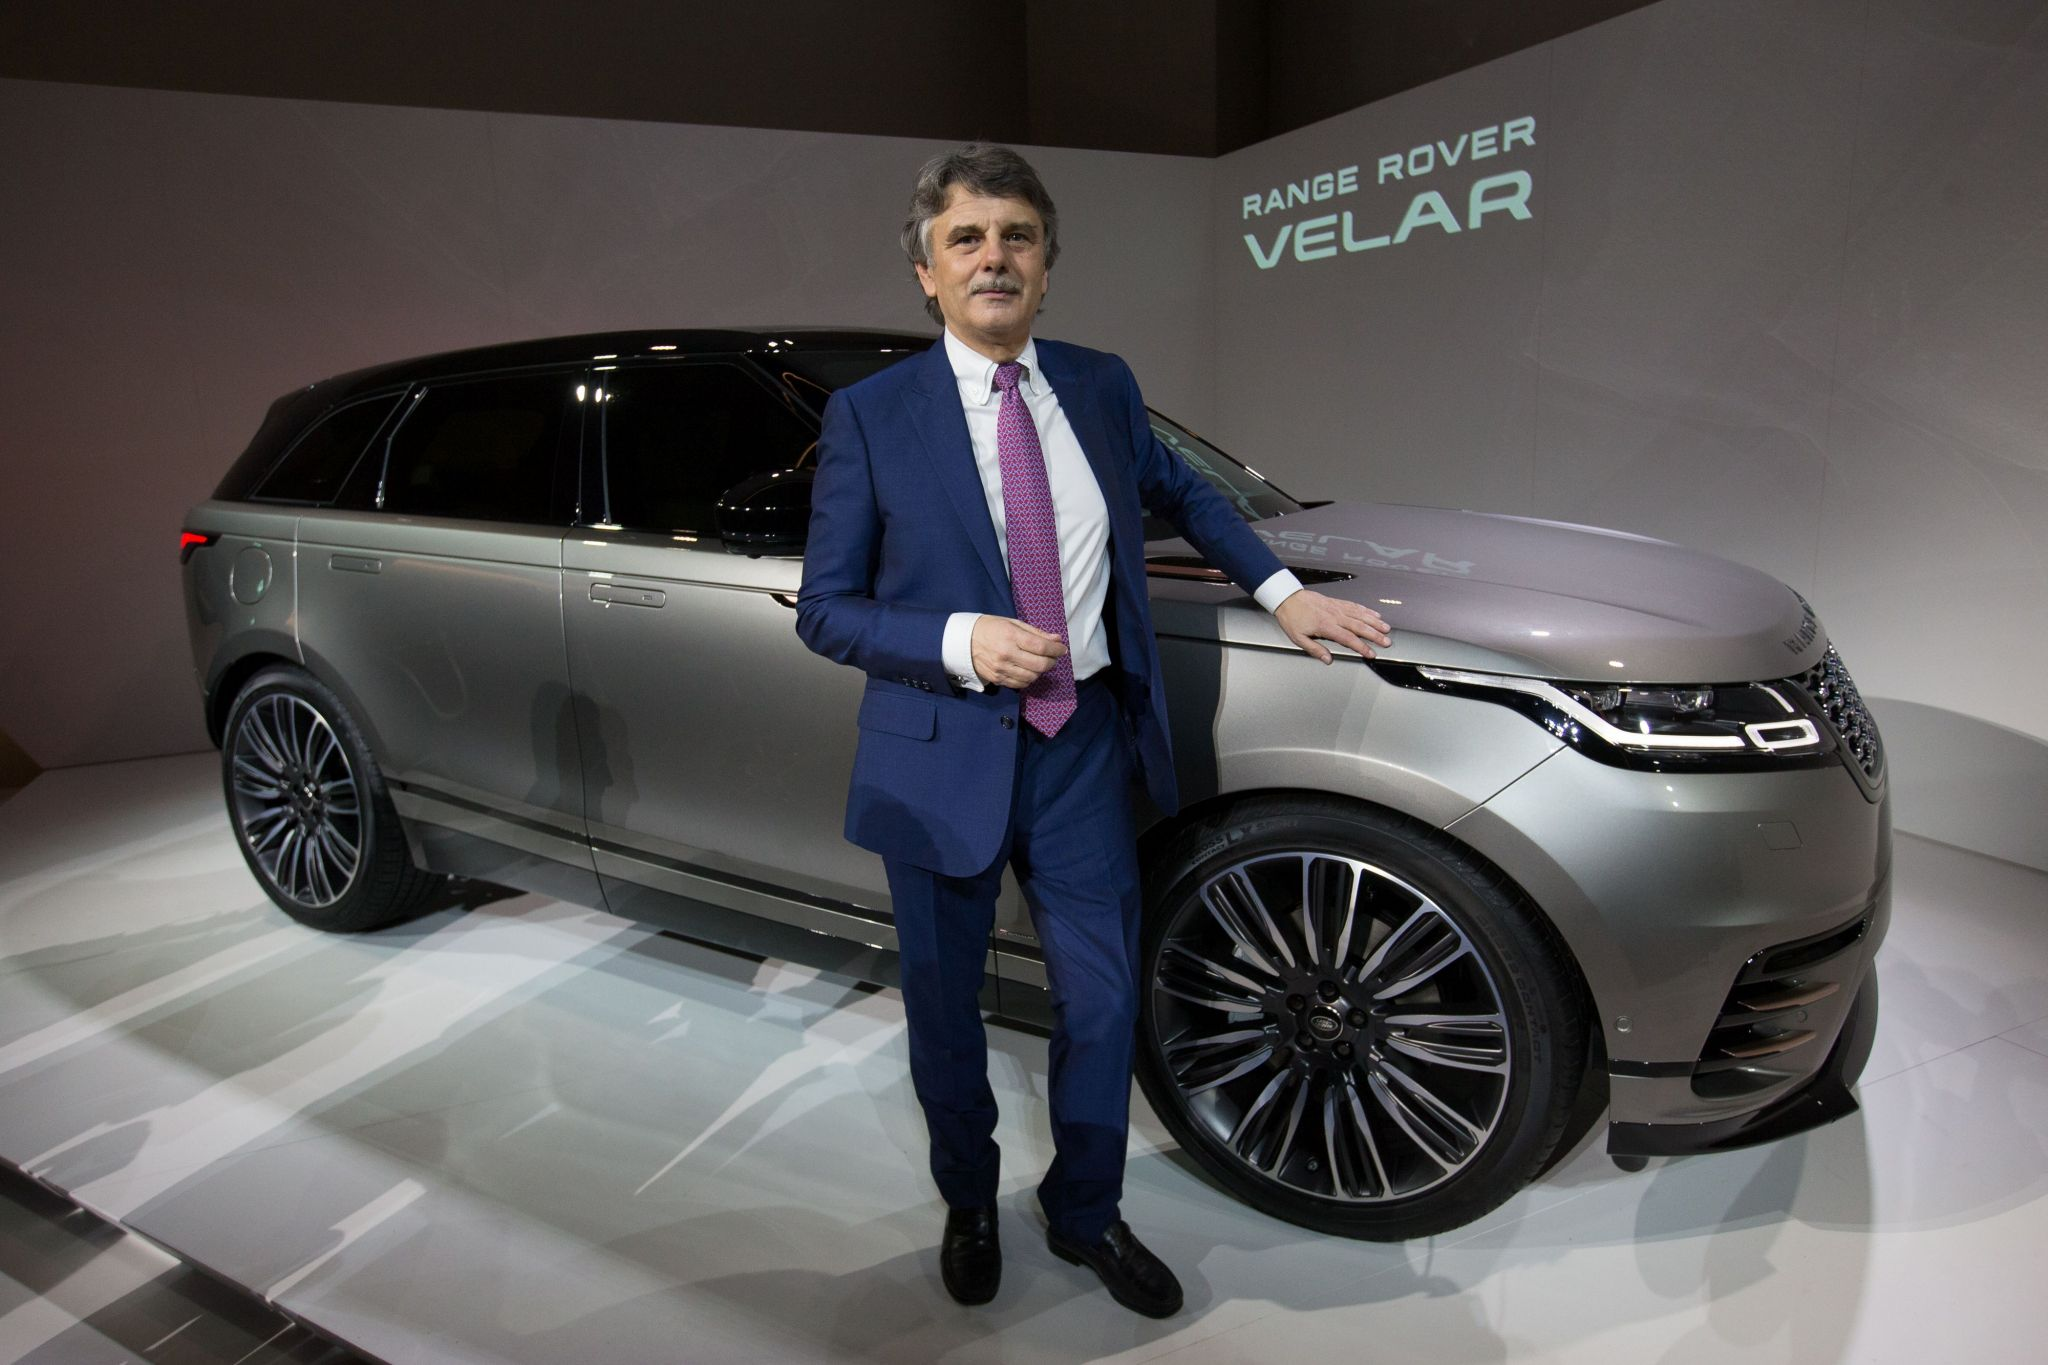 Land Rover introduces the 2018 Range Rover Velar